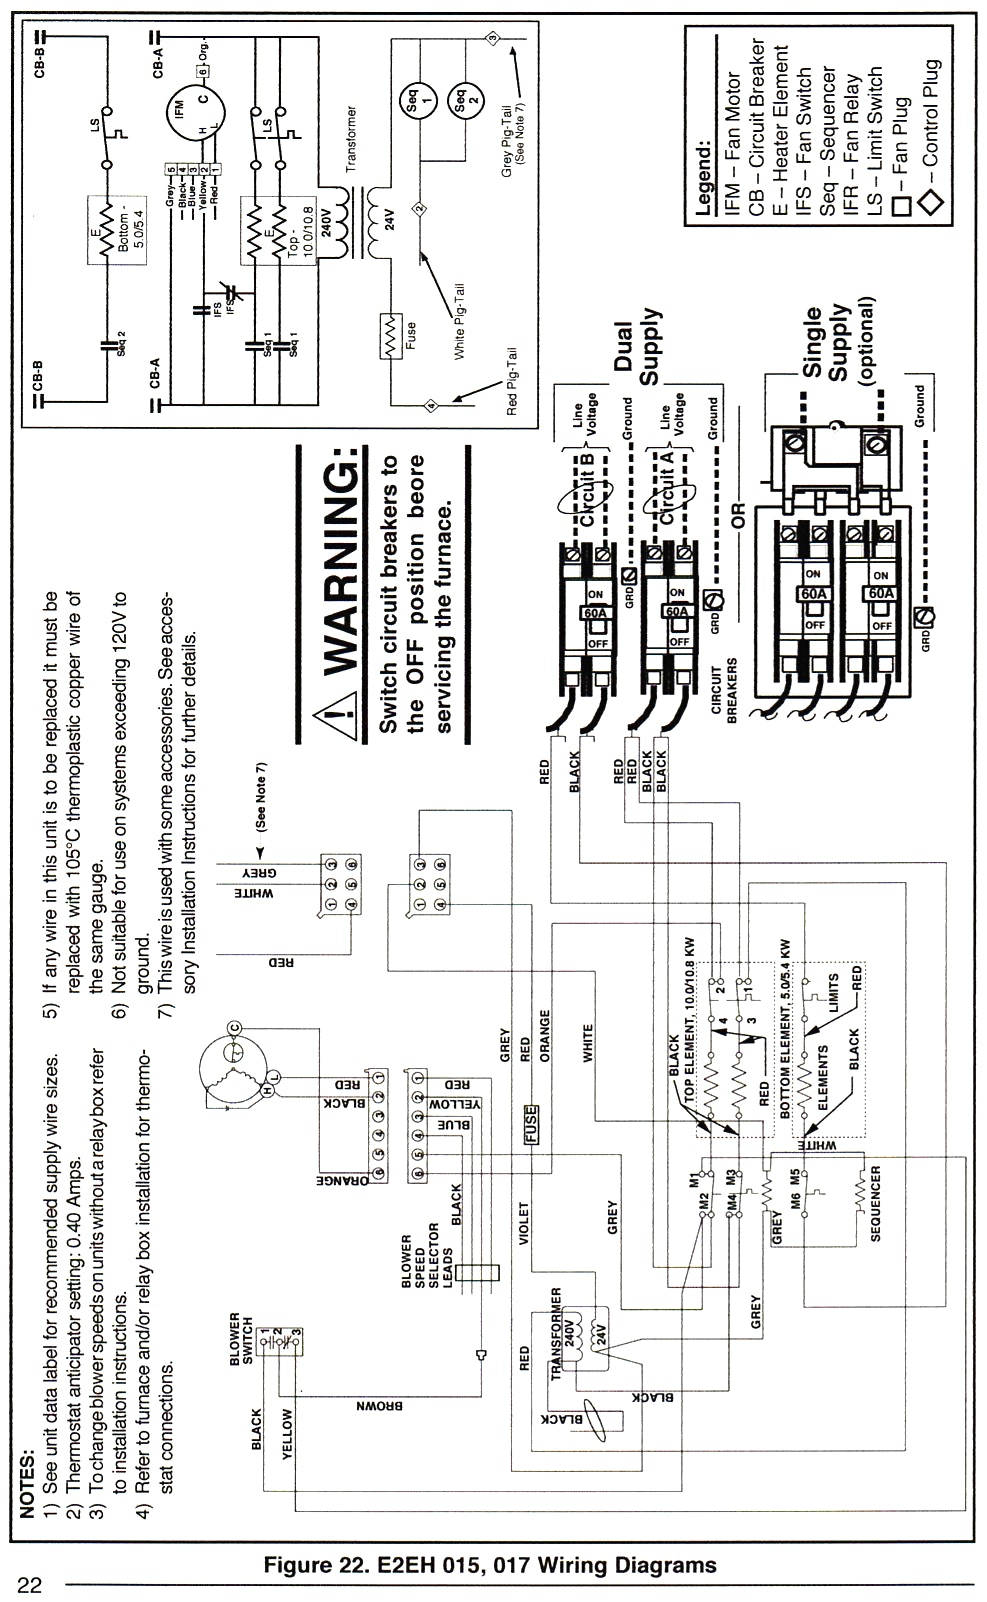 nordyne wiring diagram electric furnace Download-Intertherm Electric Furnace Wiring Diagram For Nordyne Heat Pump Showy 7-b